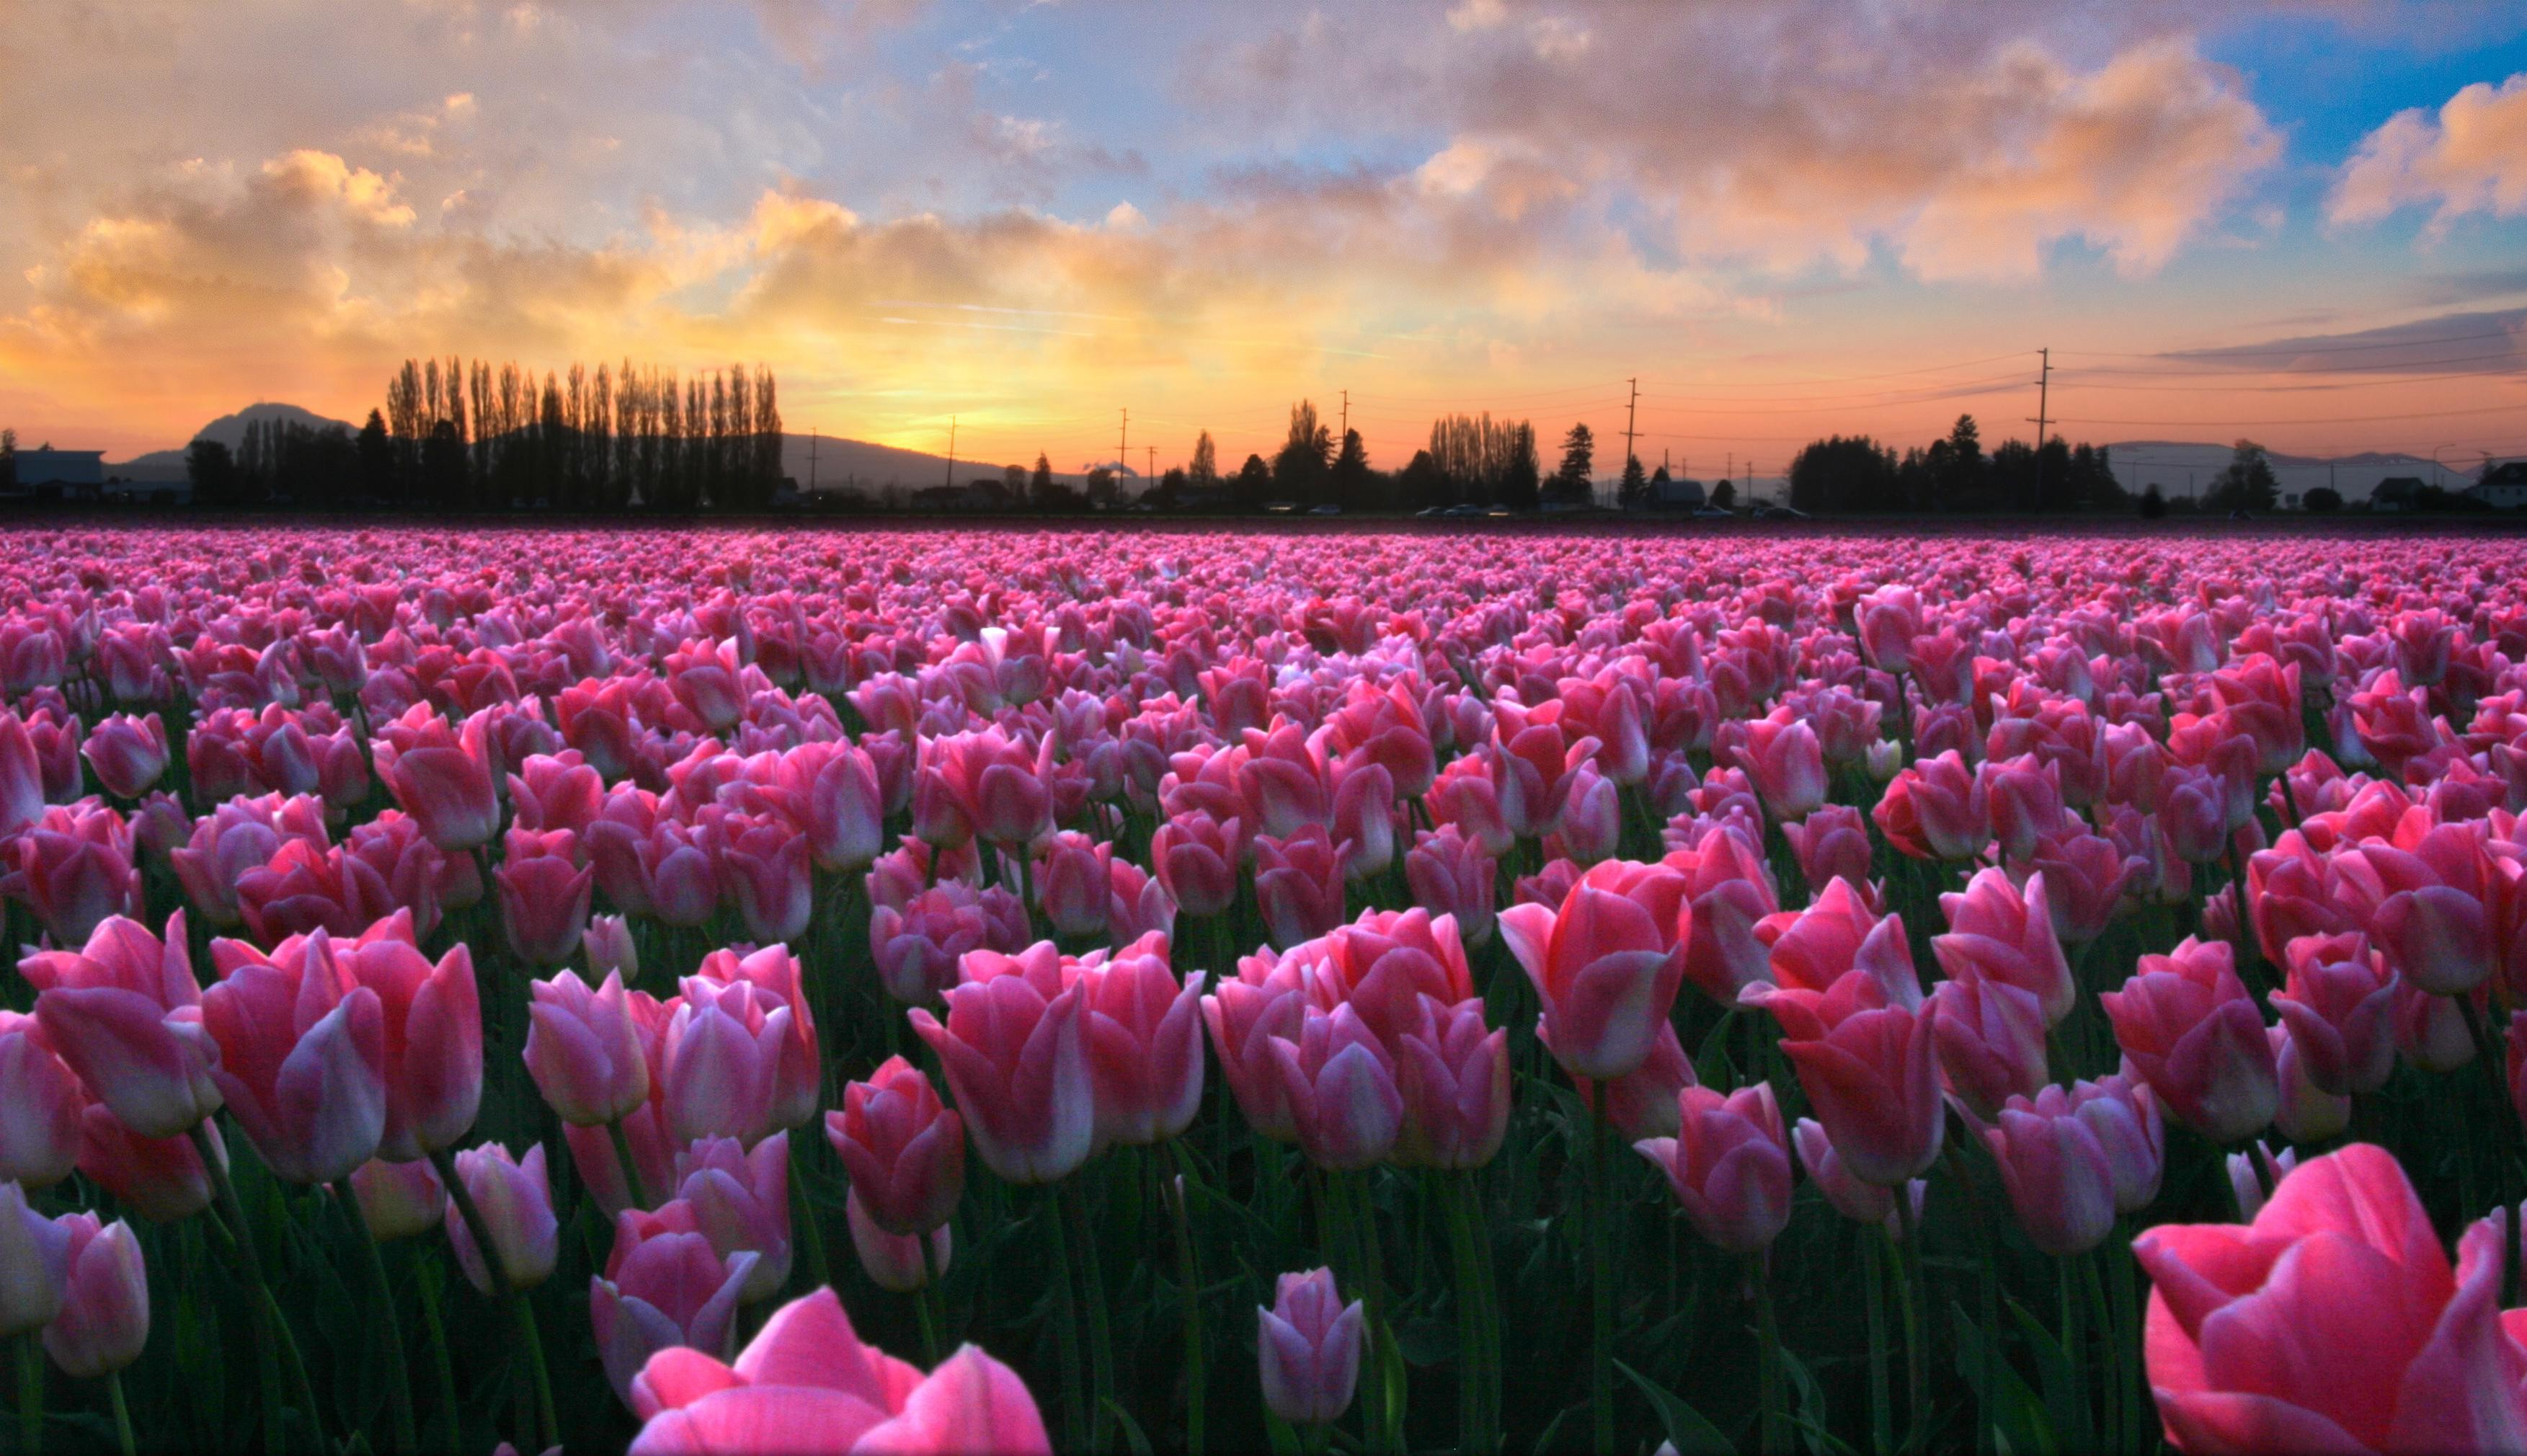 Res: 3506x2020, Pink Tulips | Download HD Wallpapers Photos